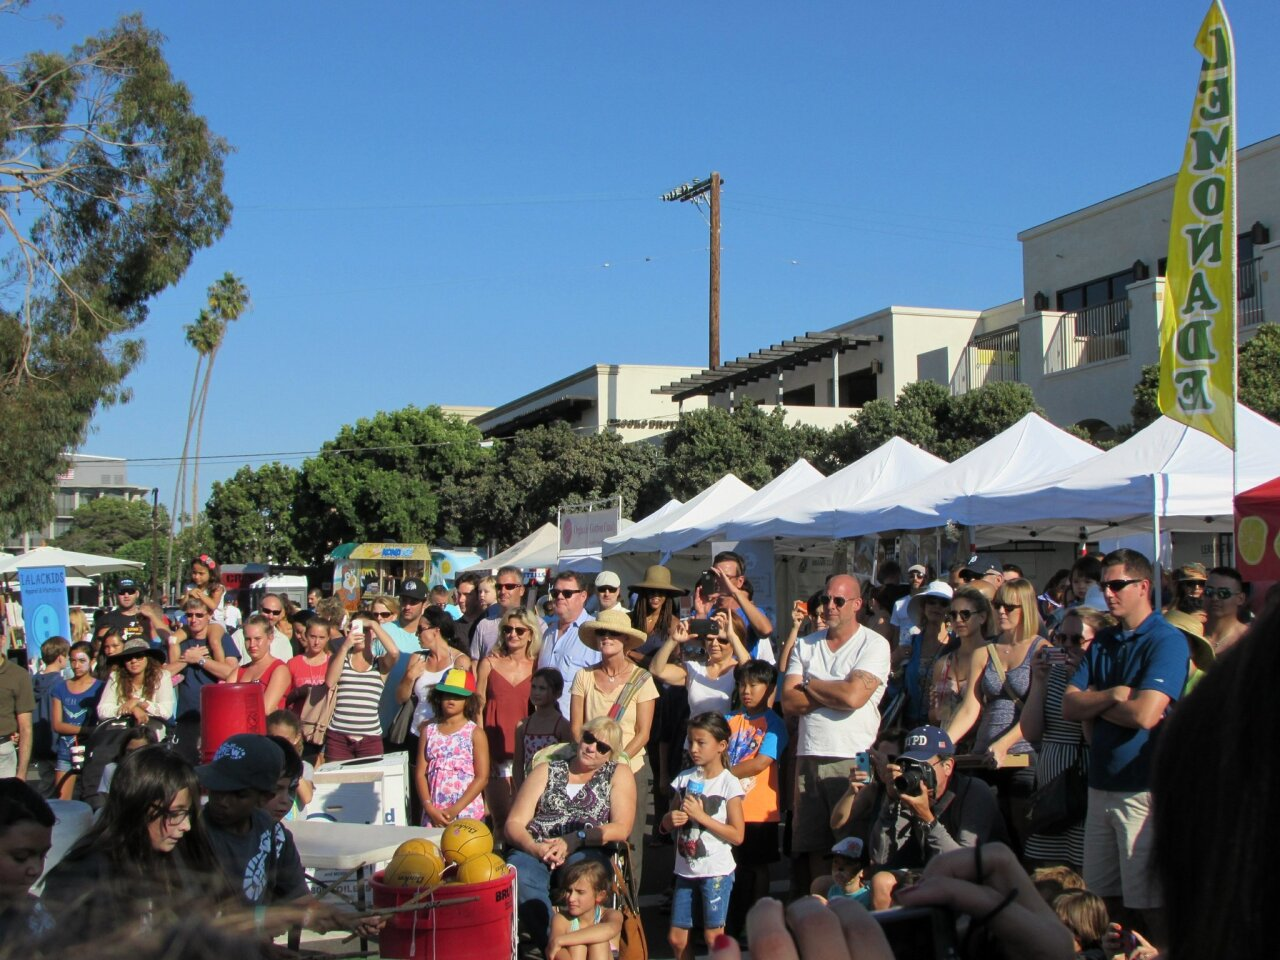 Members of the Junior Crew entertain with amazing street beats that attract a bigger and bigger crowd at the La Jolla Art & Wine Festival, Oct. 11-12, 2014.